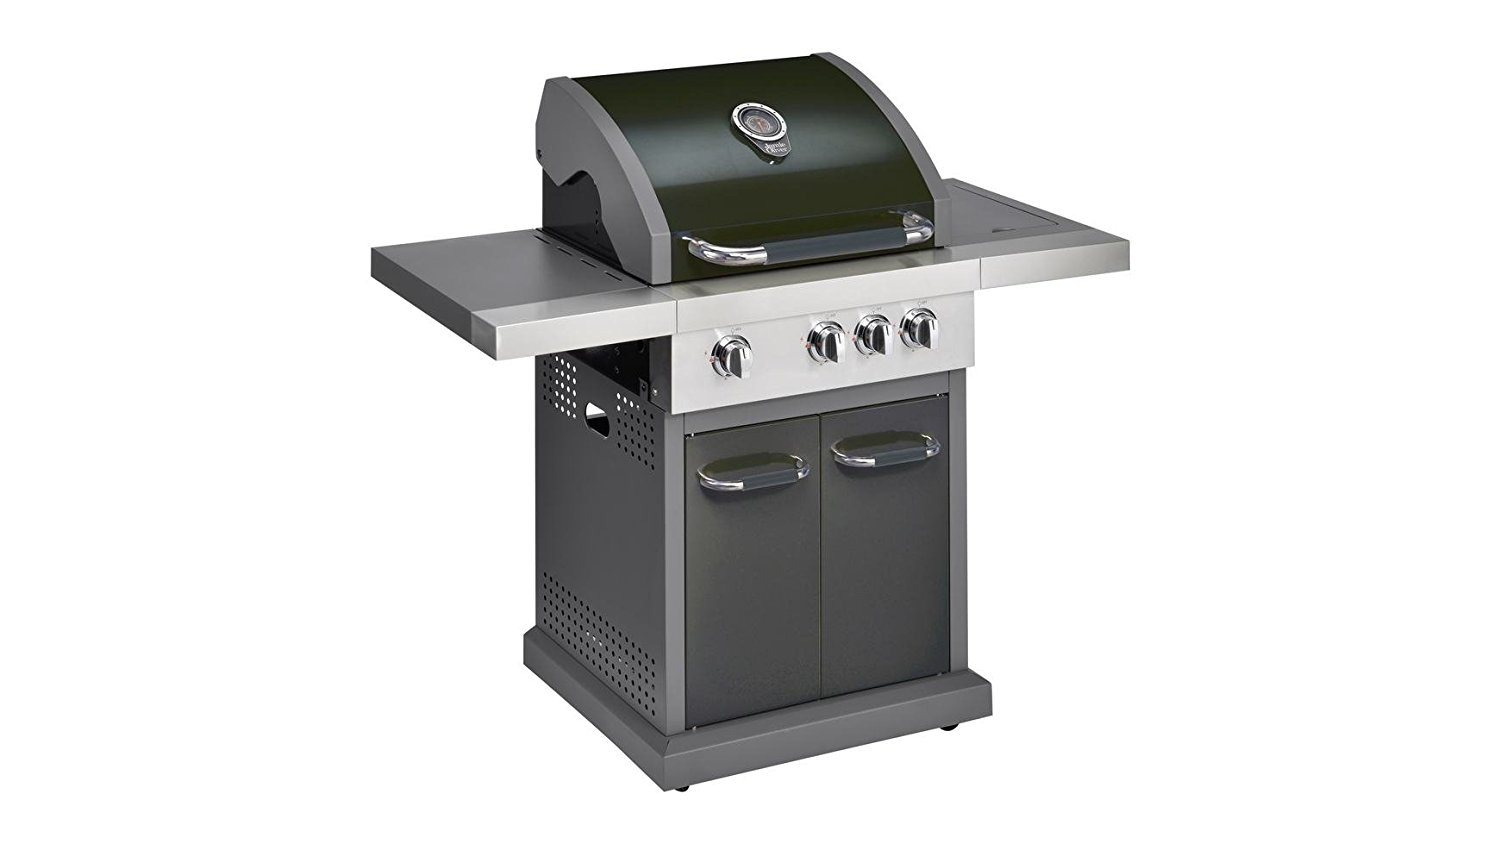 Enders Gasgrill Test San Diego 3 : Jamie oliver gasgrill expertentesten